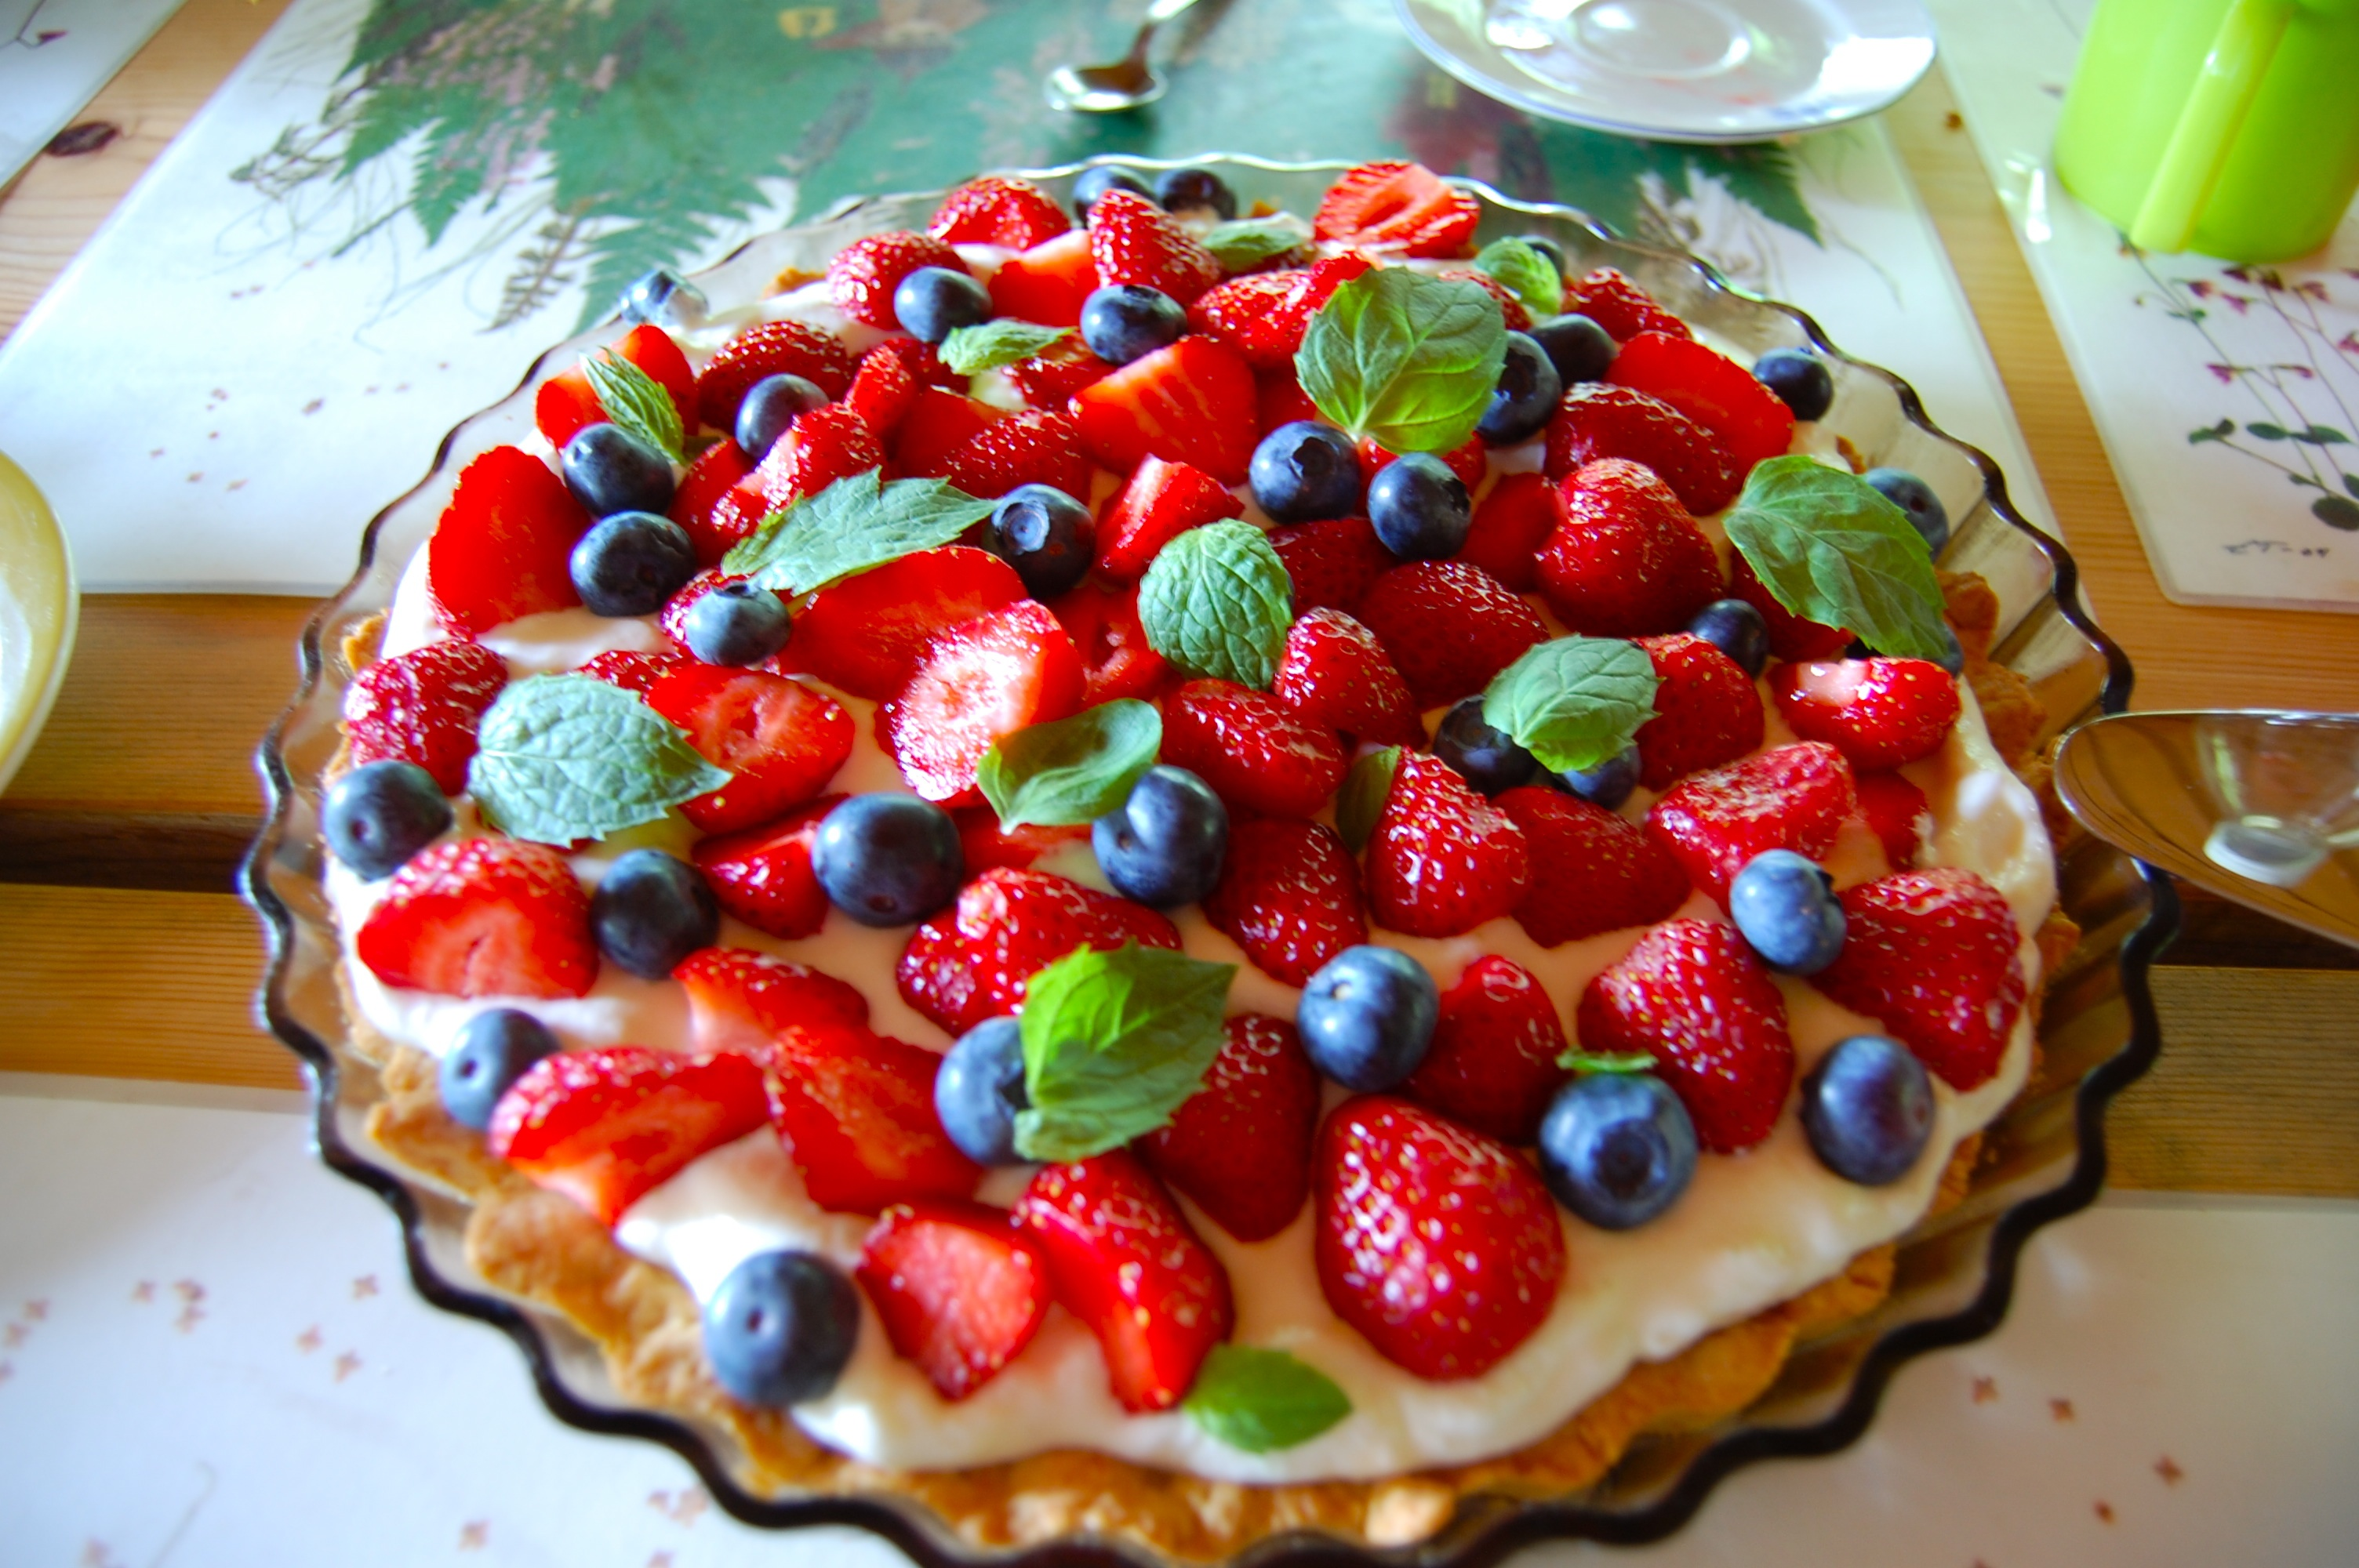 File:Strawberry-blueberry pie, July 2009.jpg - Wikimedia Commons